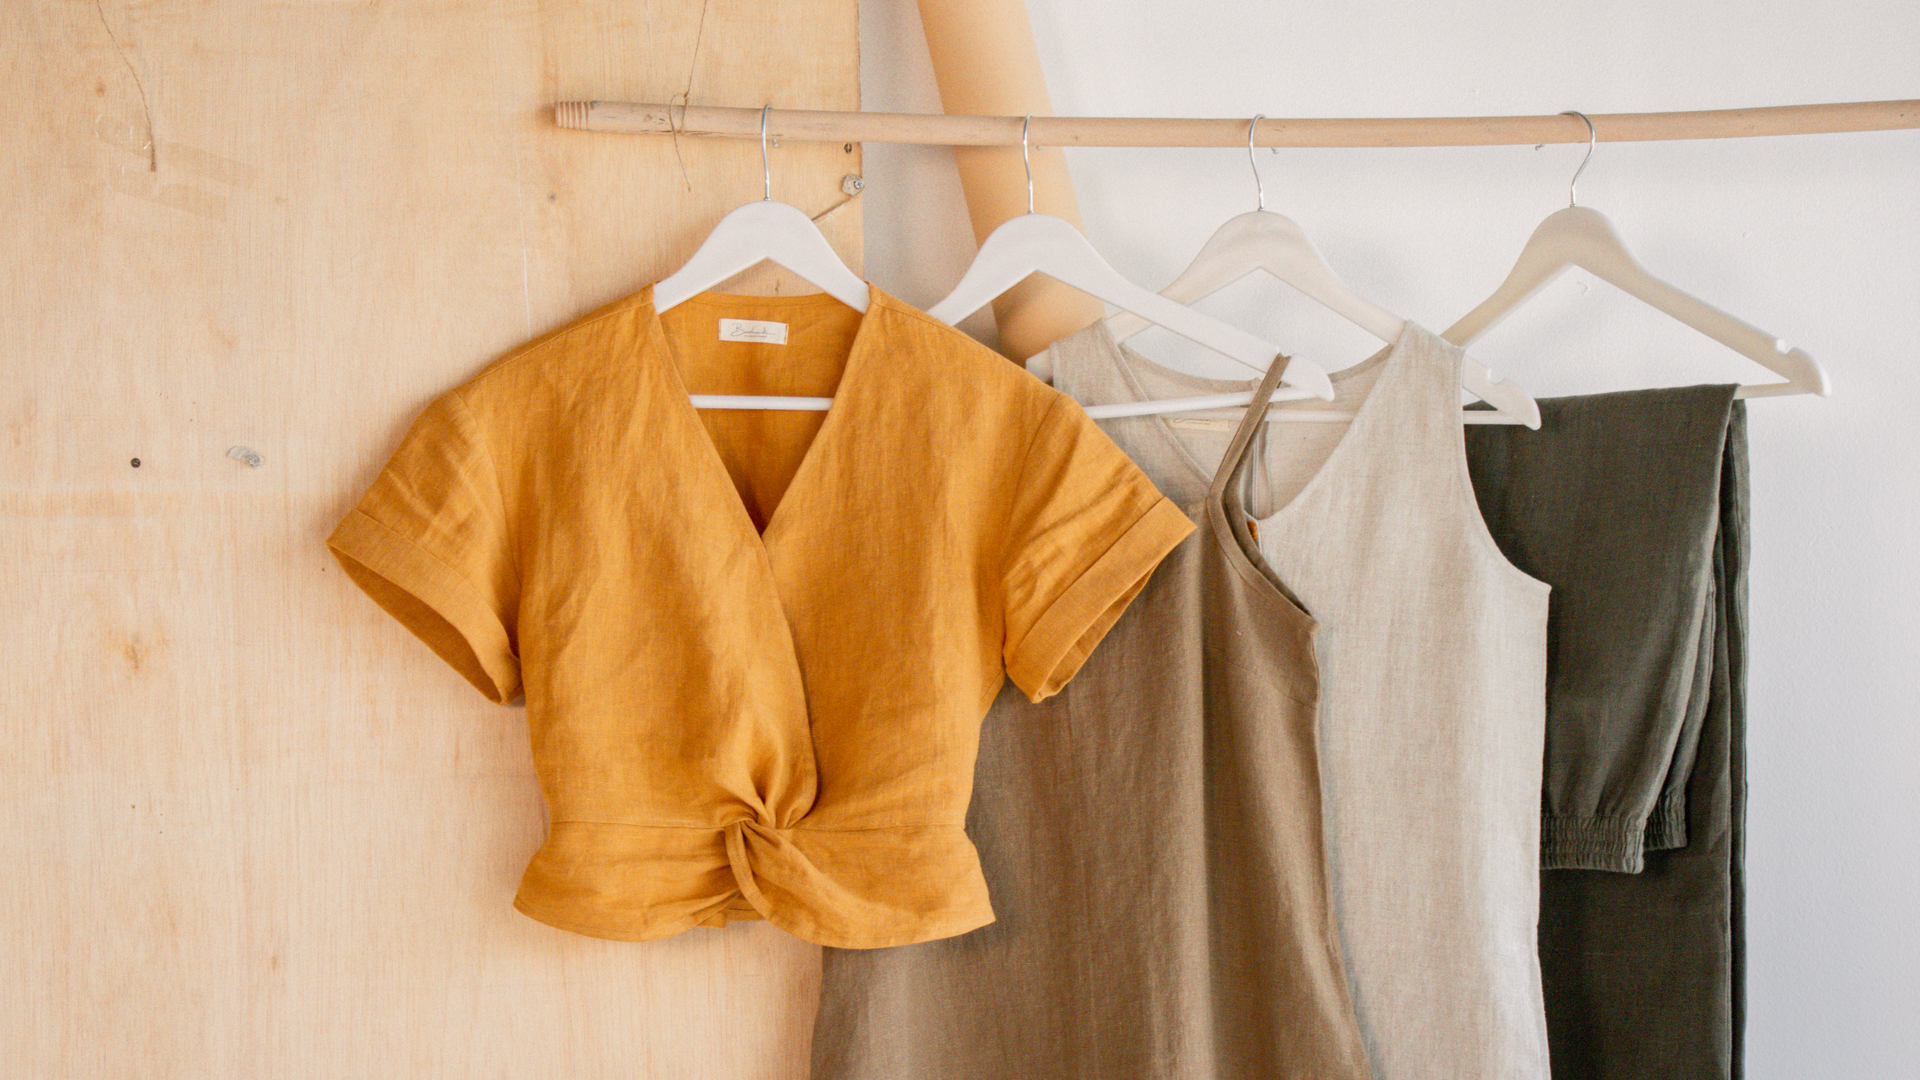 9 Easy Ways To Start Building A More Mindful Wardrobe